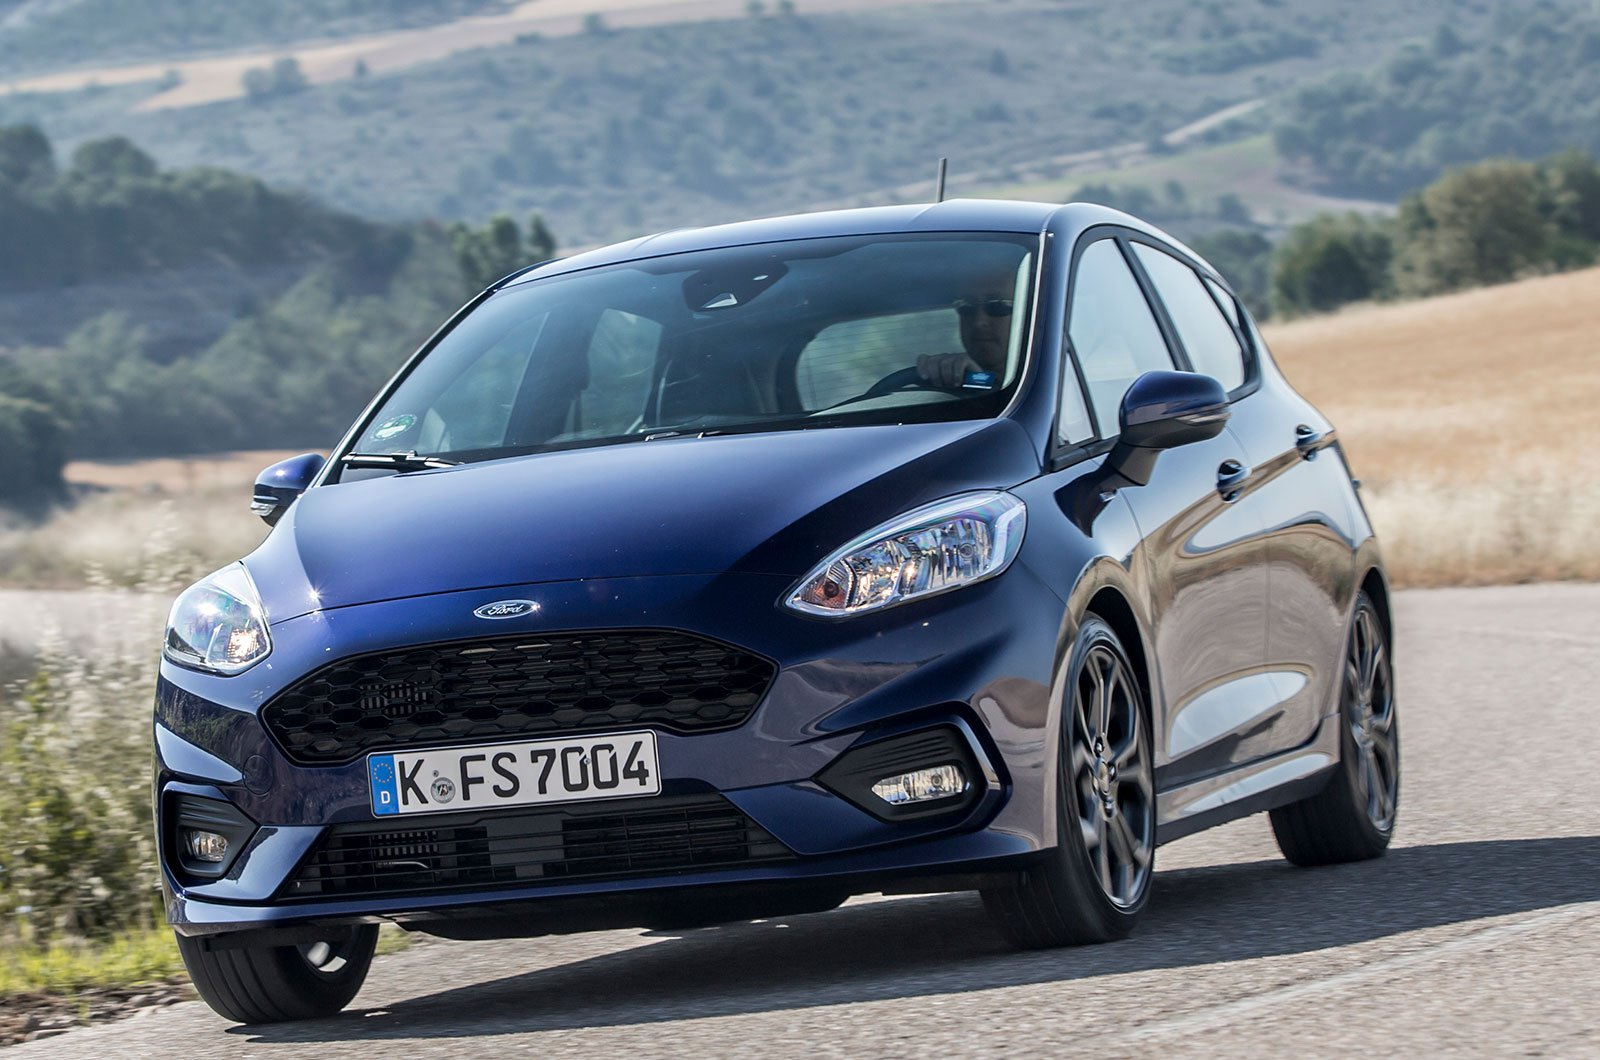 Ford Fiesta with metallic paint